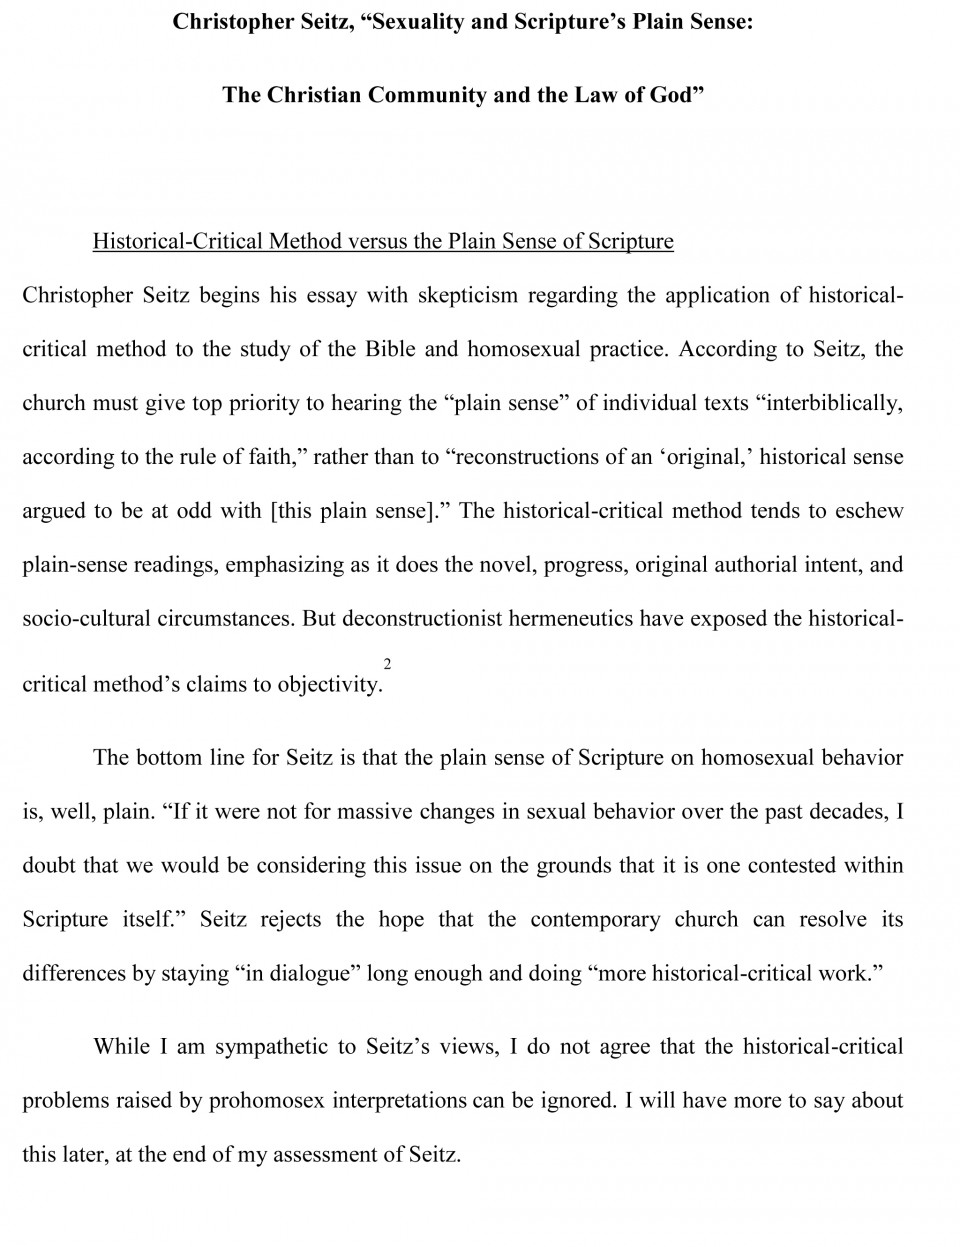 003 Critical Analysis Essay Sample Autoethnography Example Best Essays Examples Pdf 960